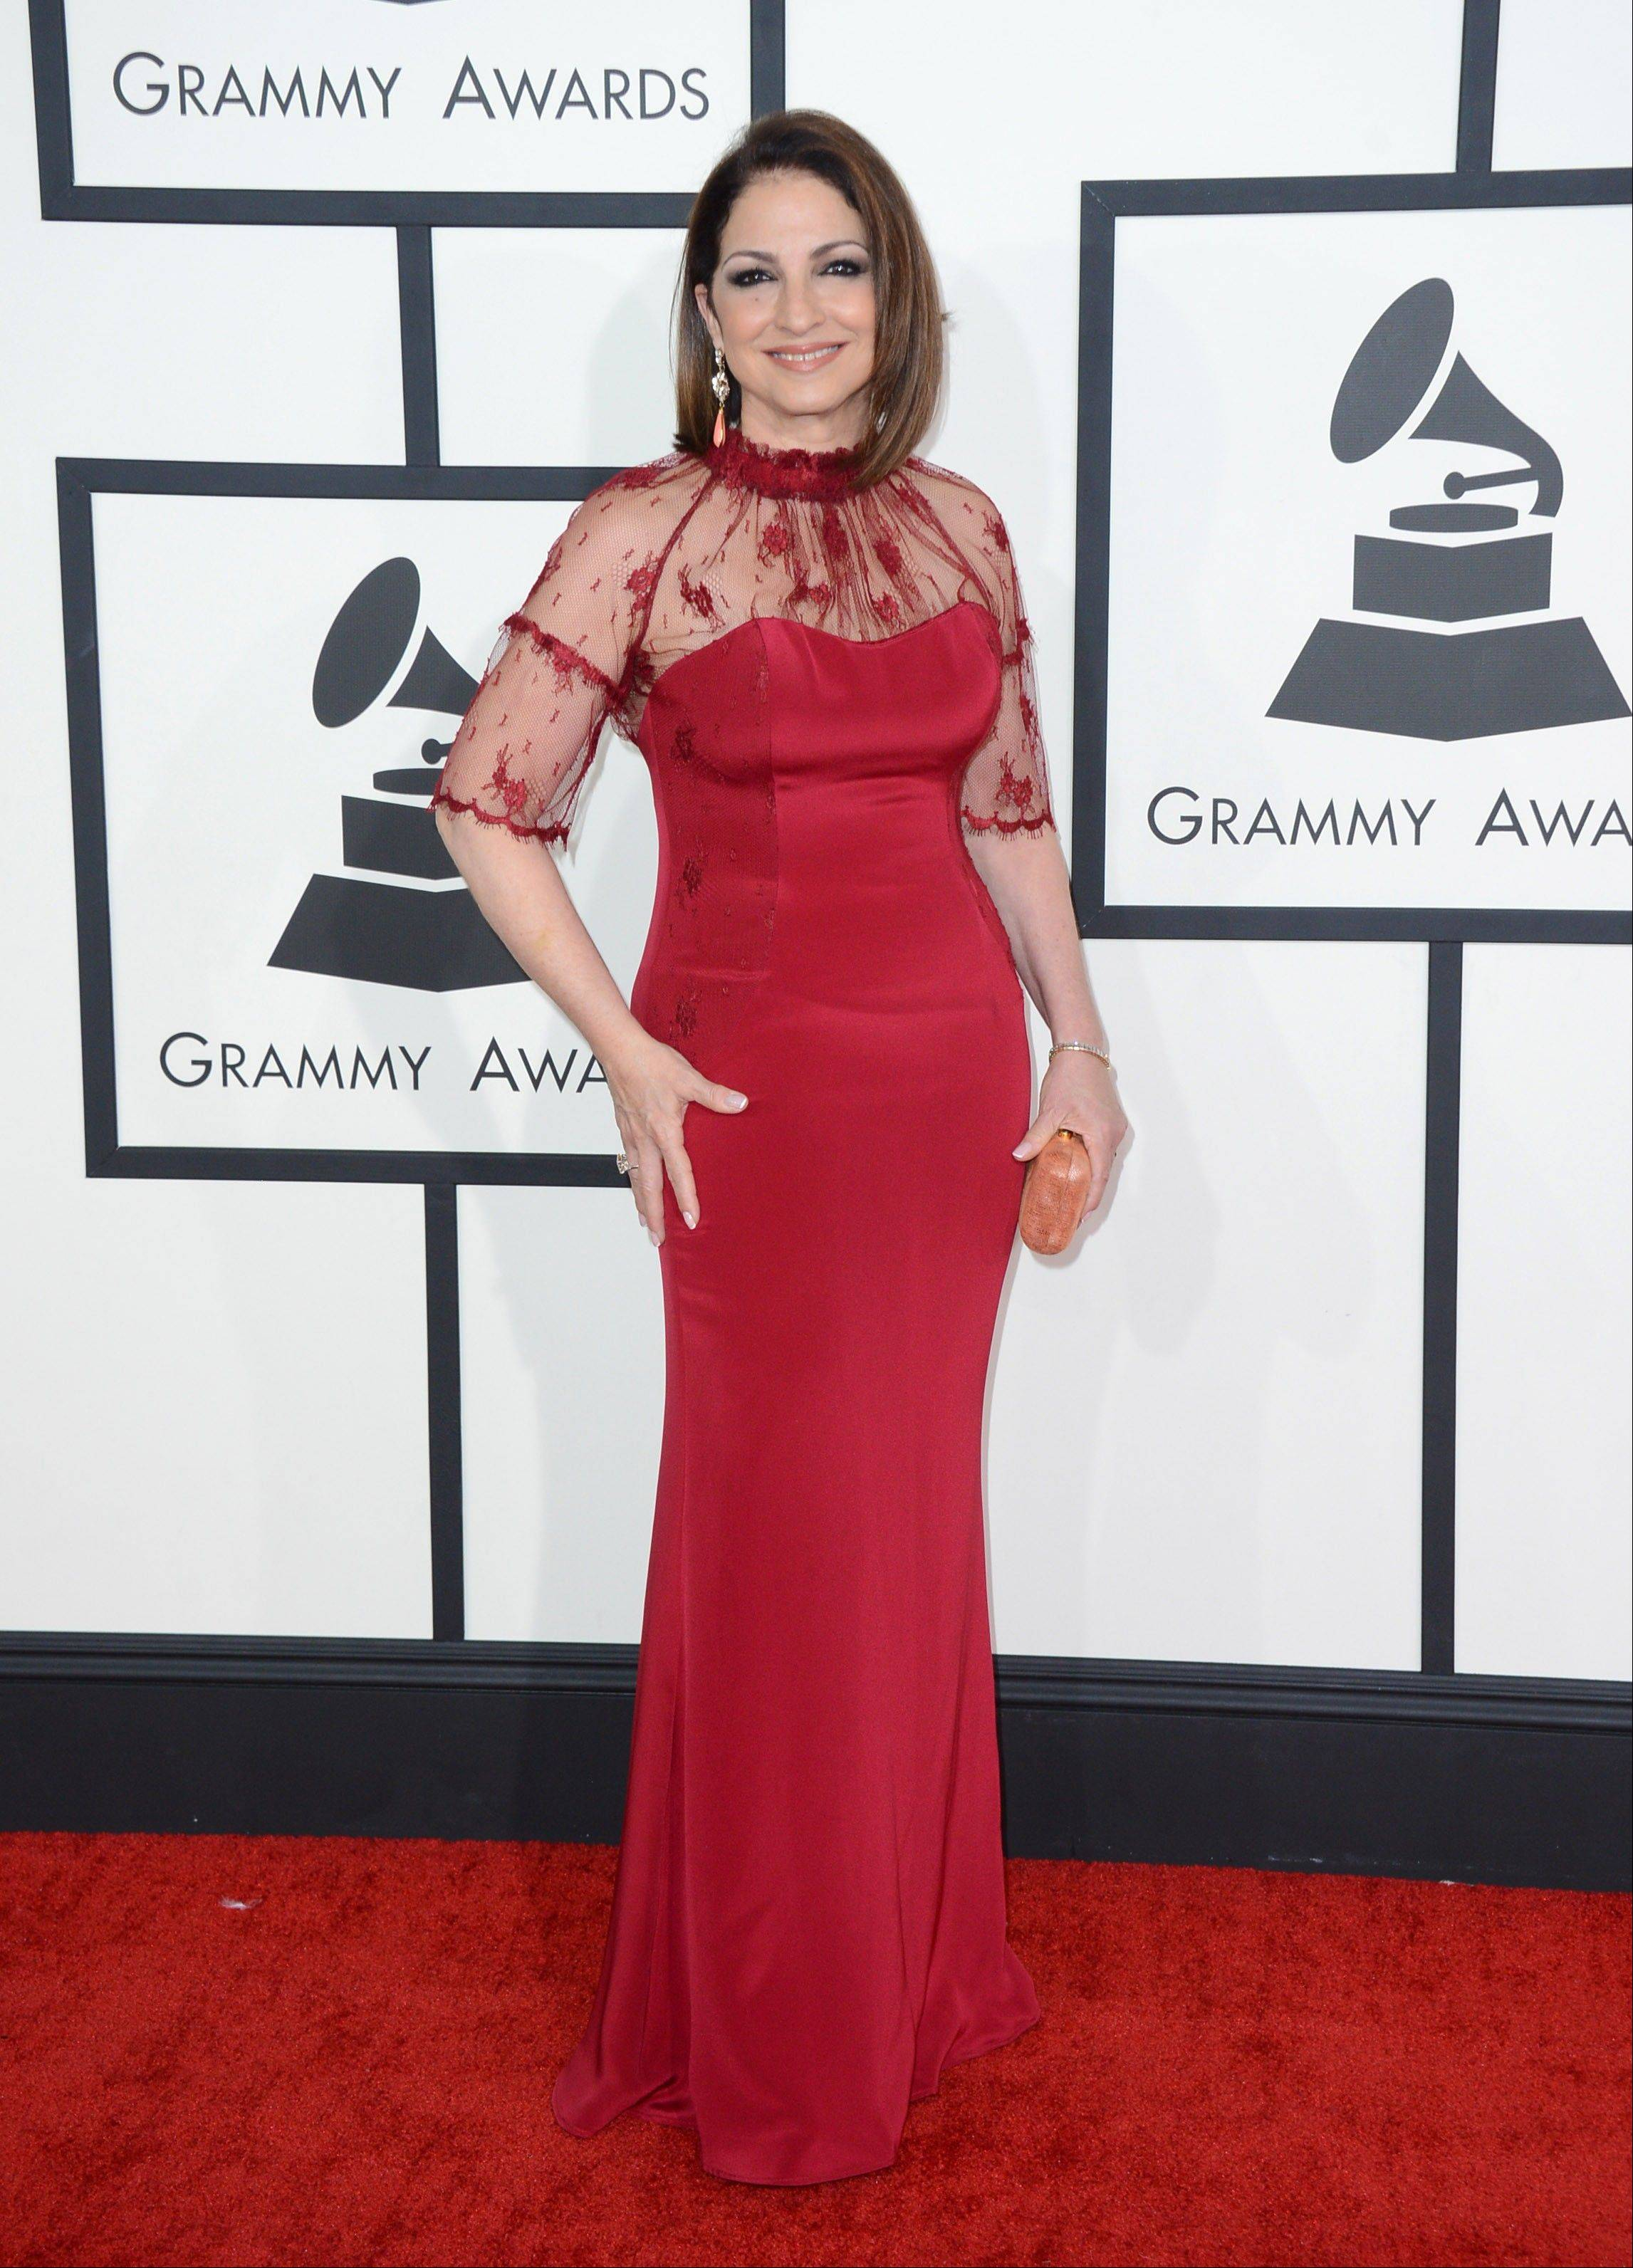 Gloria Estefan arrives at the 56th annual Grammy Awards at Staples Center on Sunday.